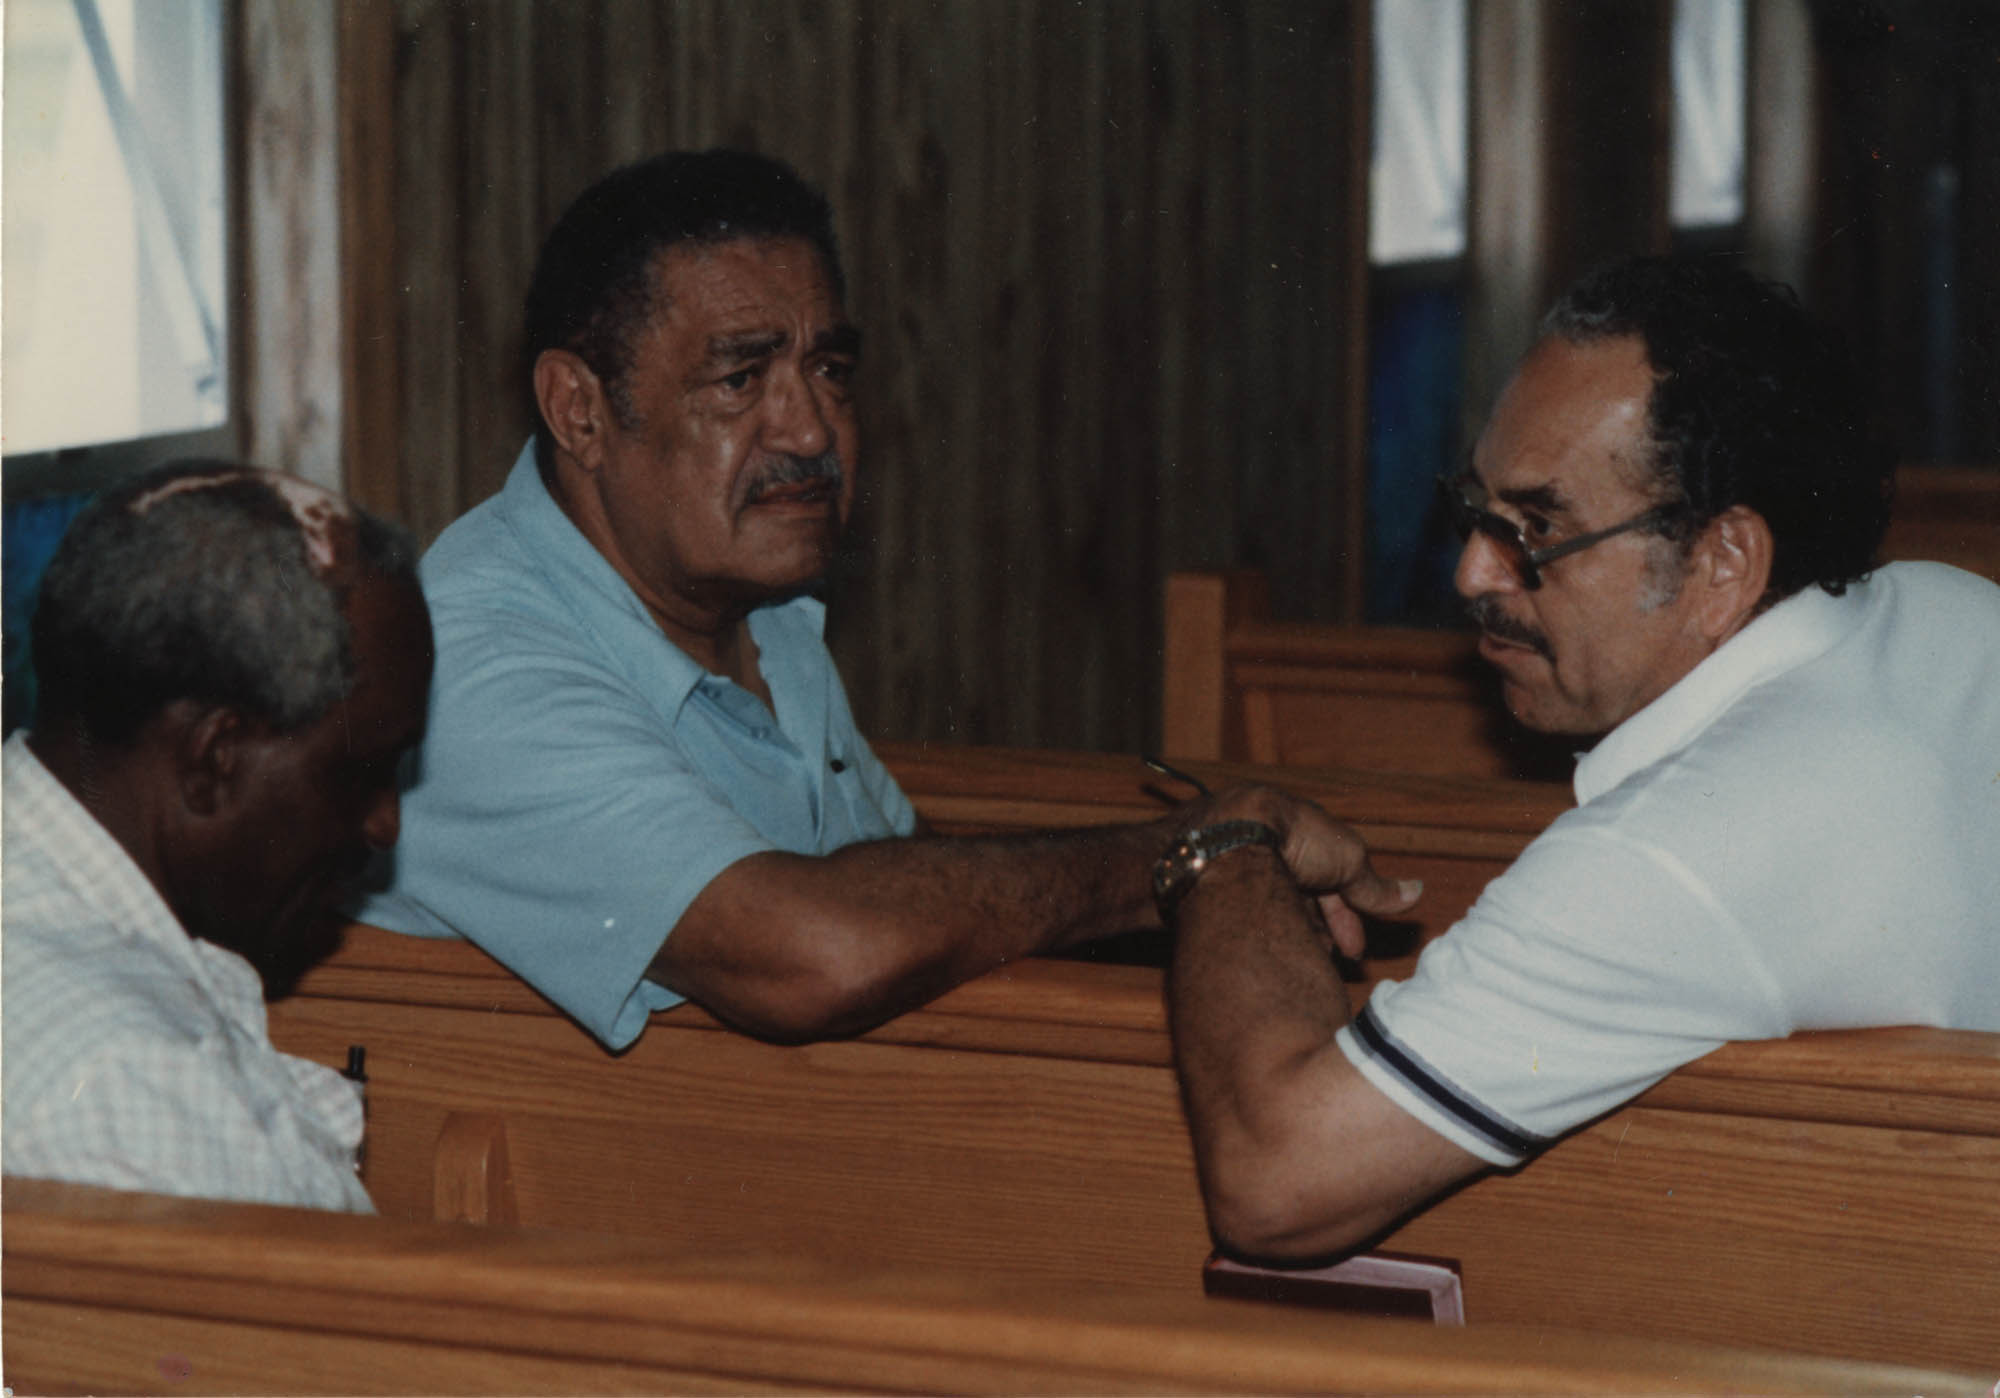 Photograph of J. Arthur Brown and Two Unidentified Men Sitting in Church Pews